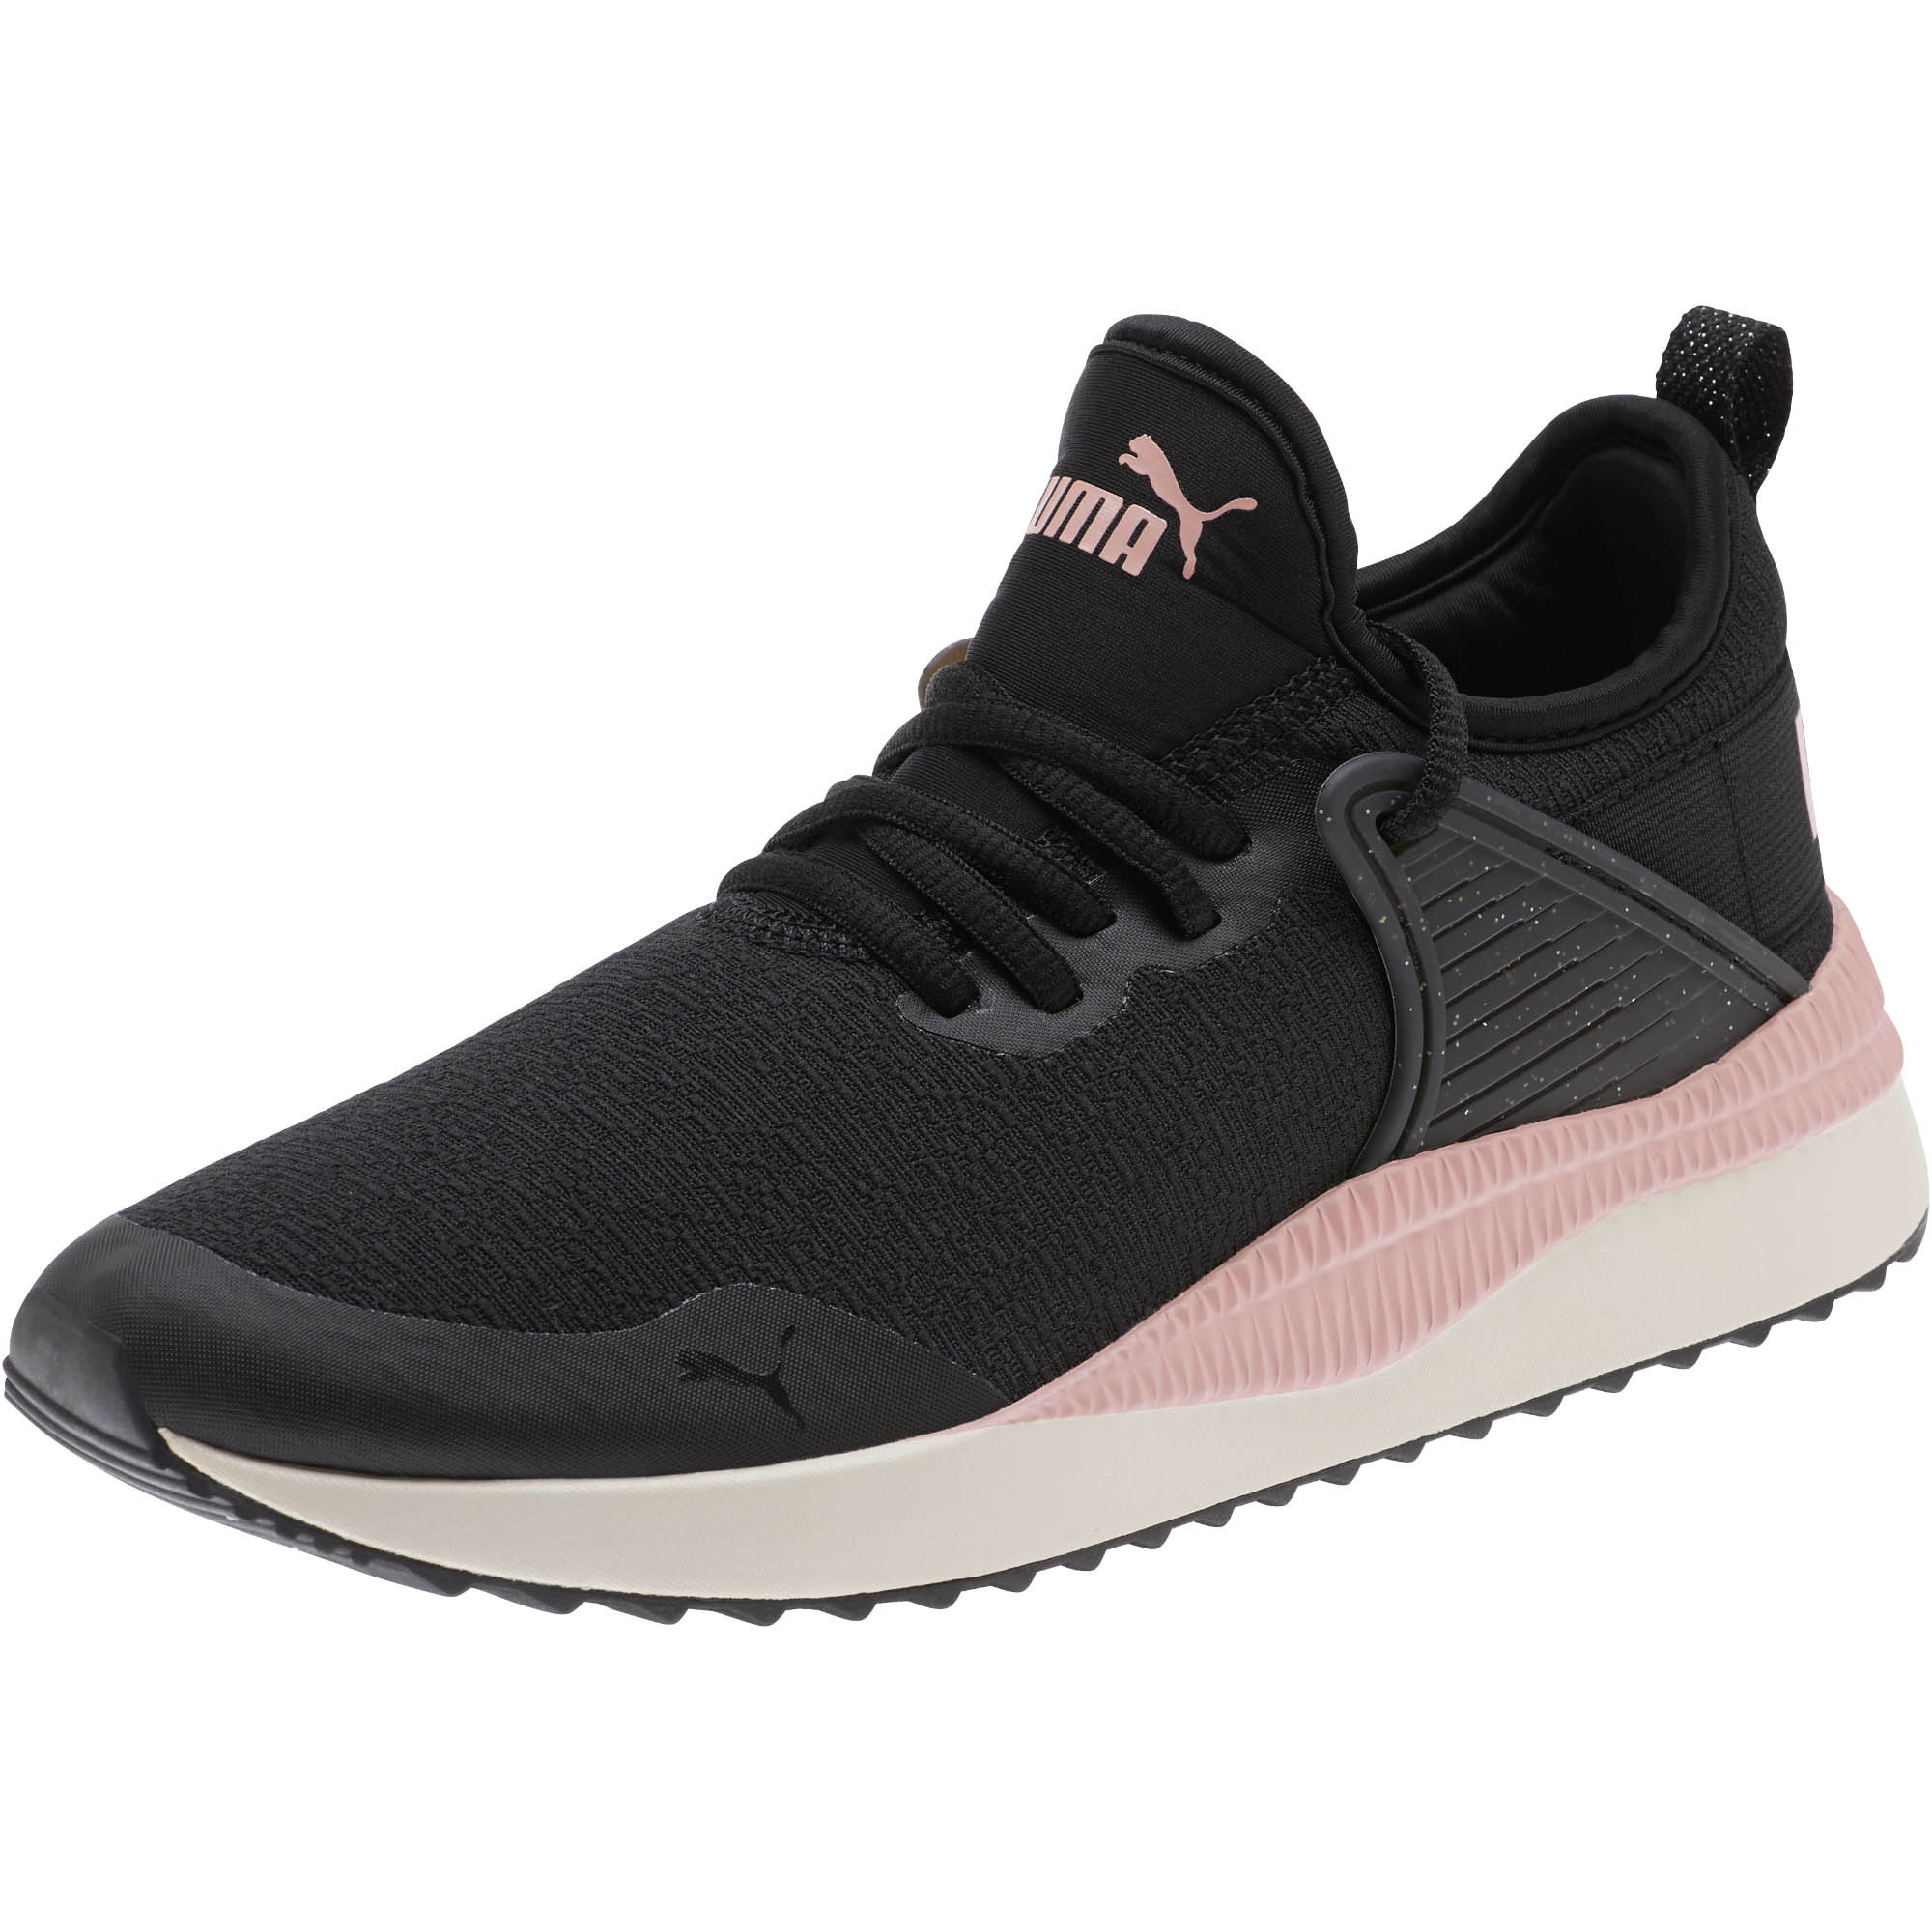 PUMA-Pacer-Next-Cage-Glitter-Women-039-s-Sneakers-Women-Shoe-Basics thumbnail 9